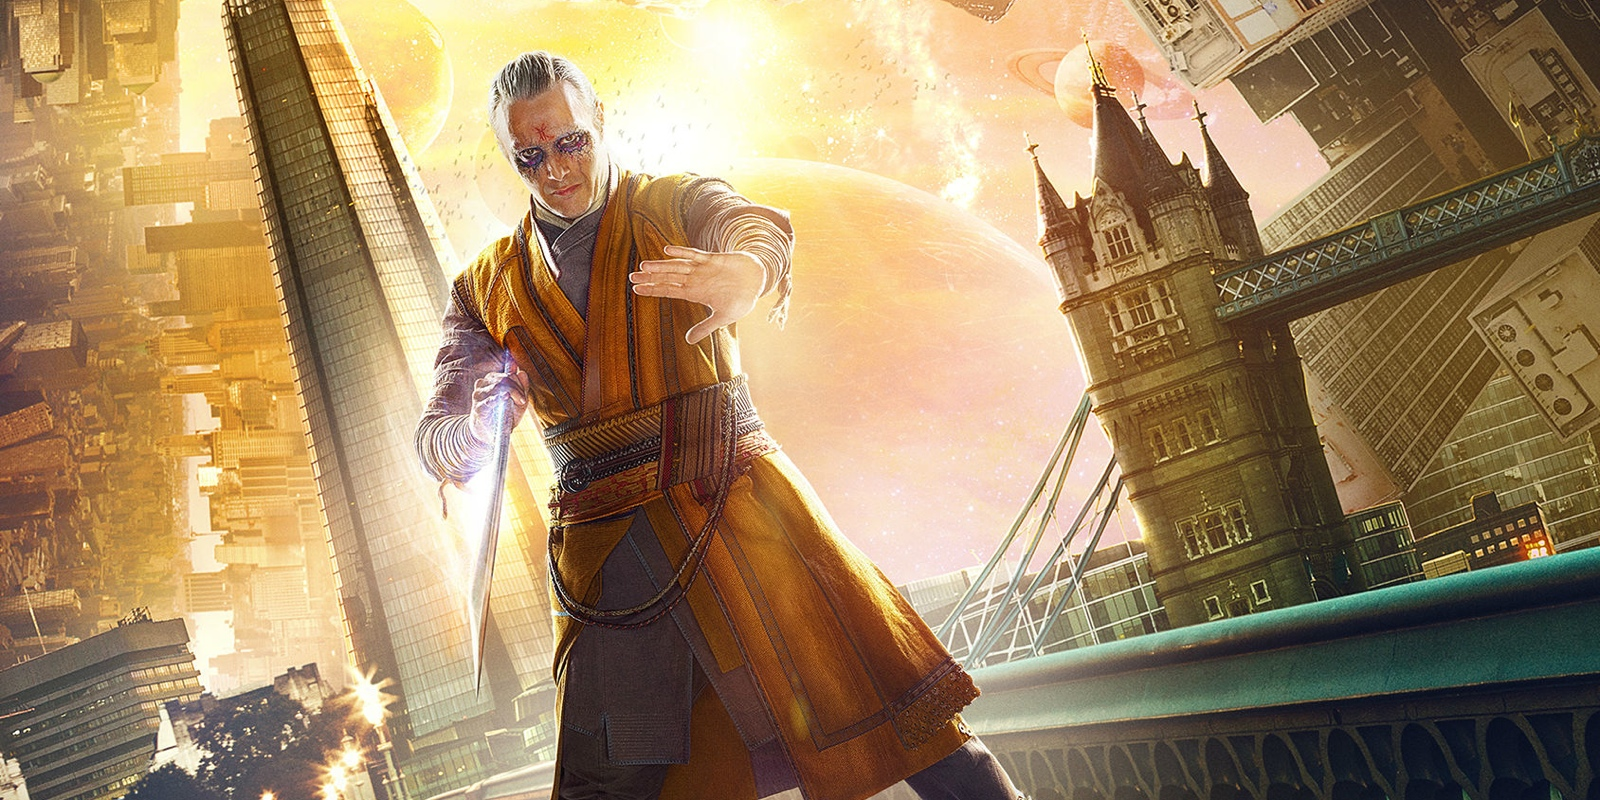 http://screenrant.com/wp-content/uploads/2016/09/Doctor-Strange-Kaecilius-poster-featured.jpg